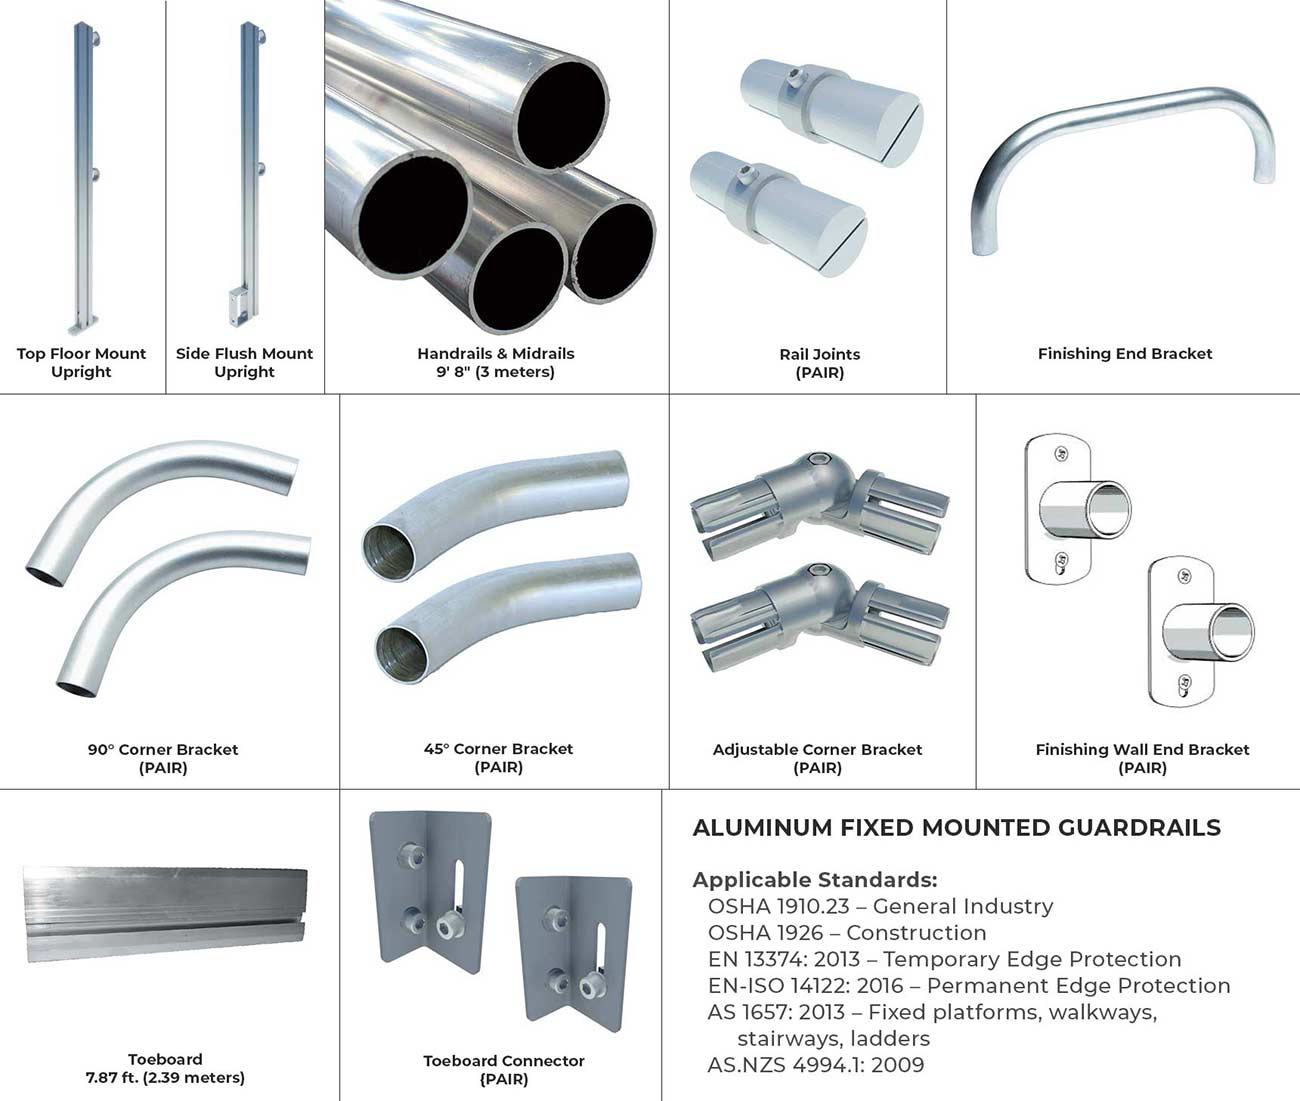 Aluminum Fixed Mounted Guardrails - Components & Parts